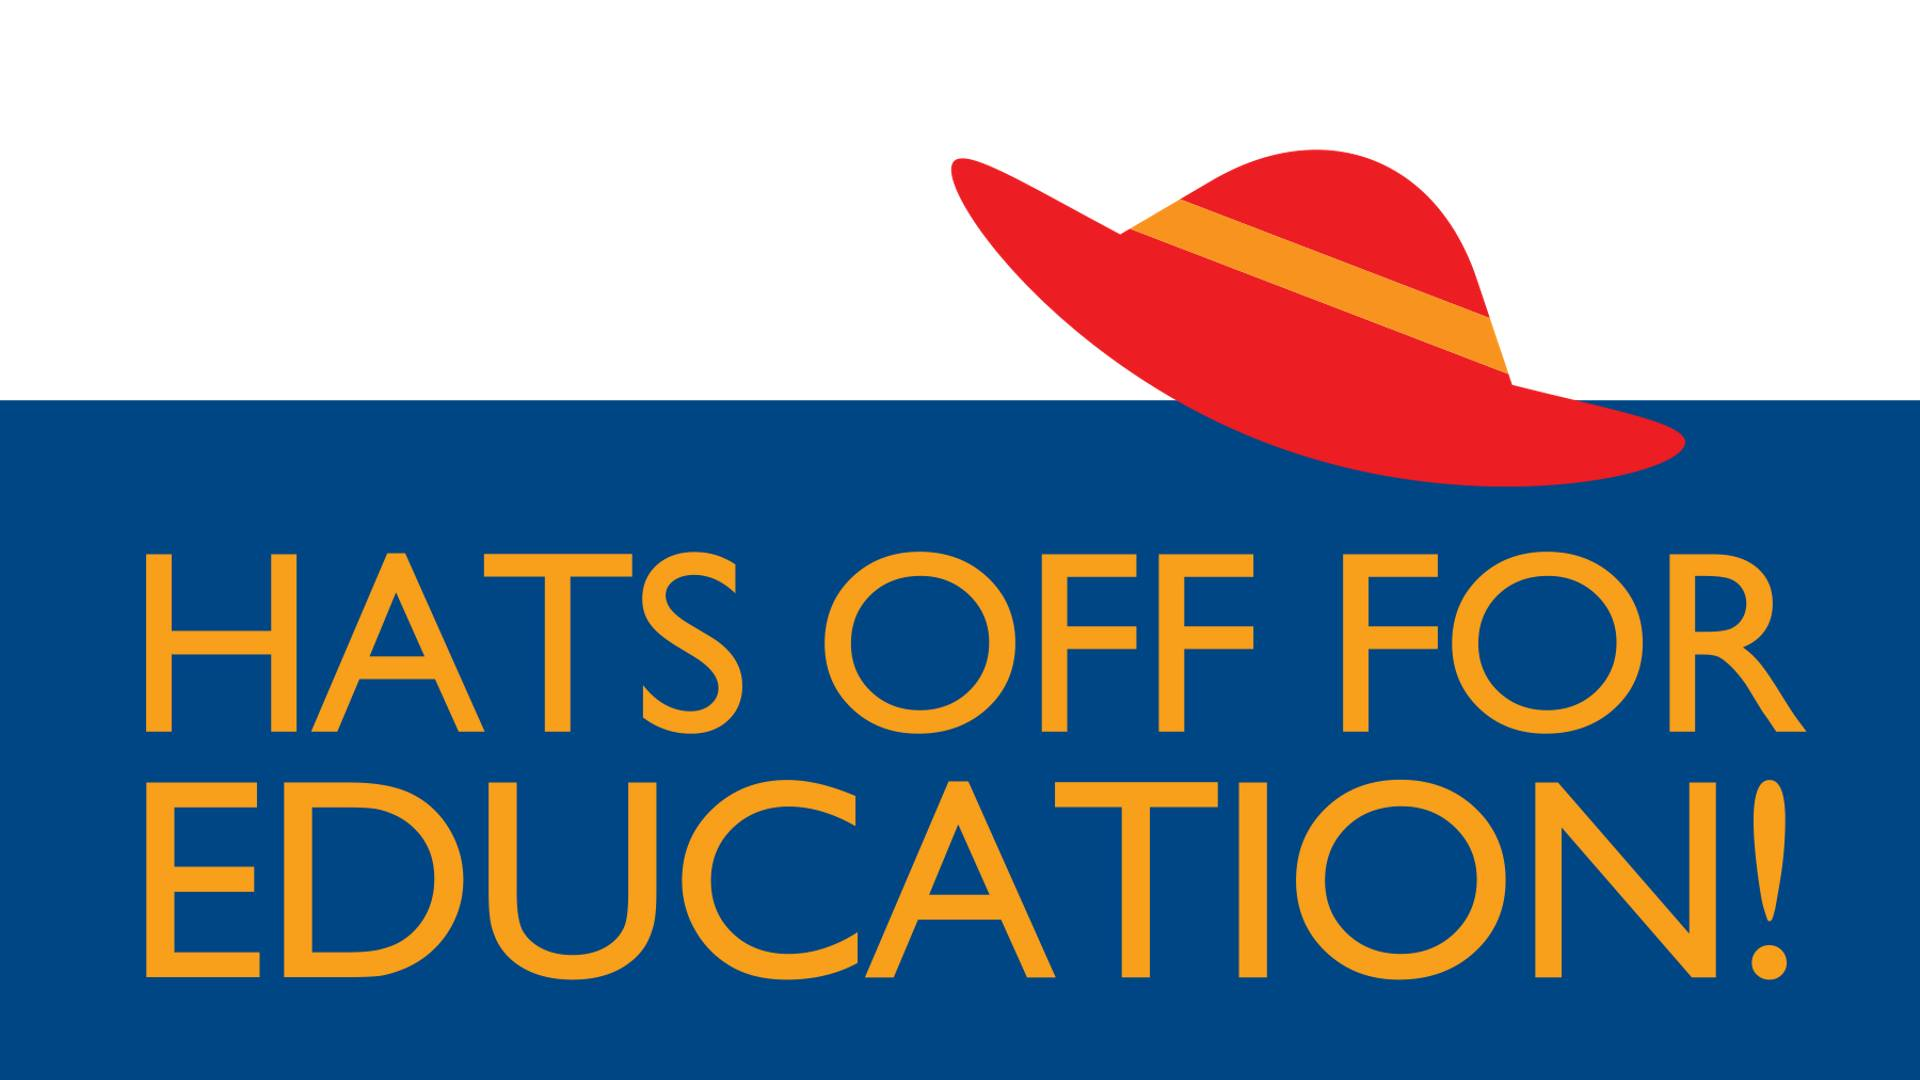 Hats off for Education Banner